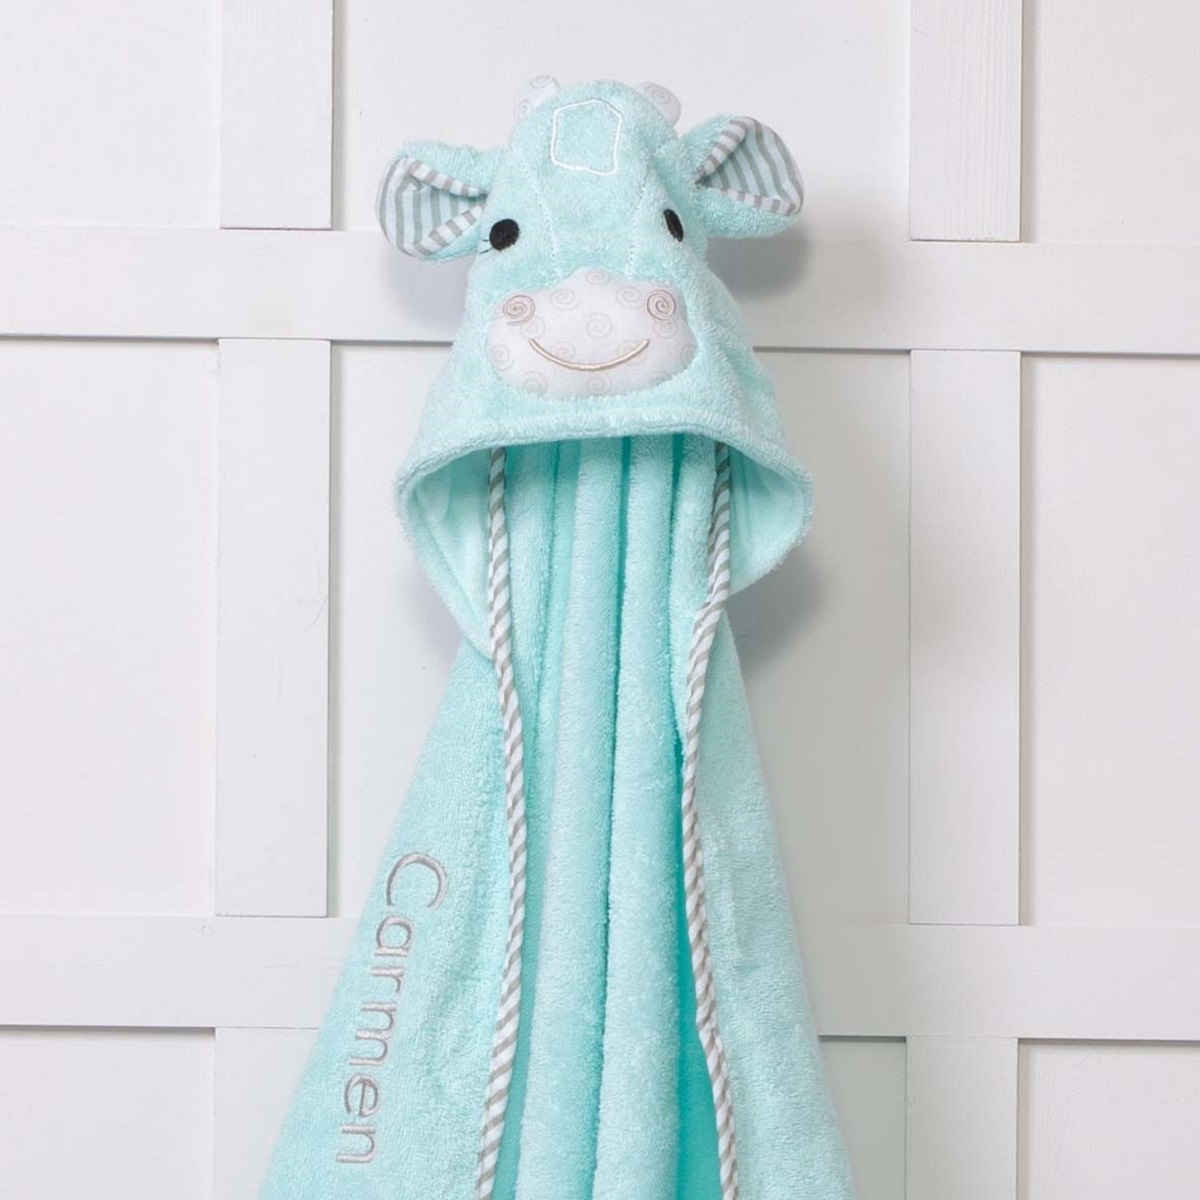 Personalised Zoocchini Aqua Green Jaime The Giraffe Hooded Baby Towel